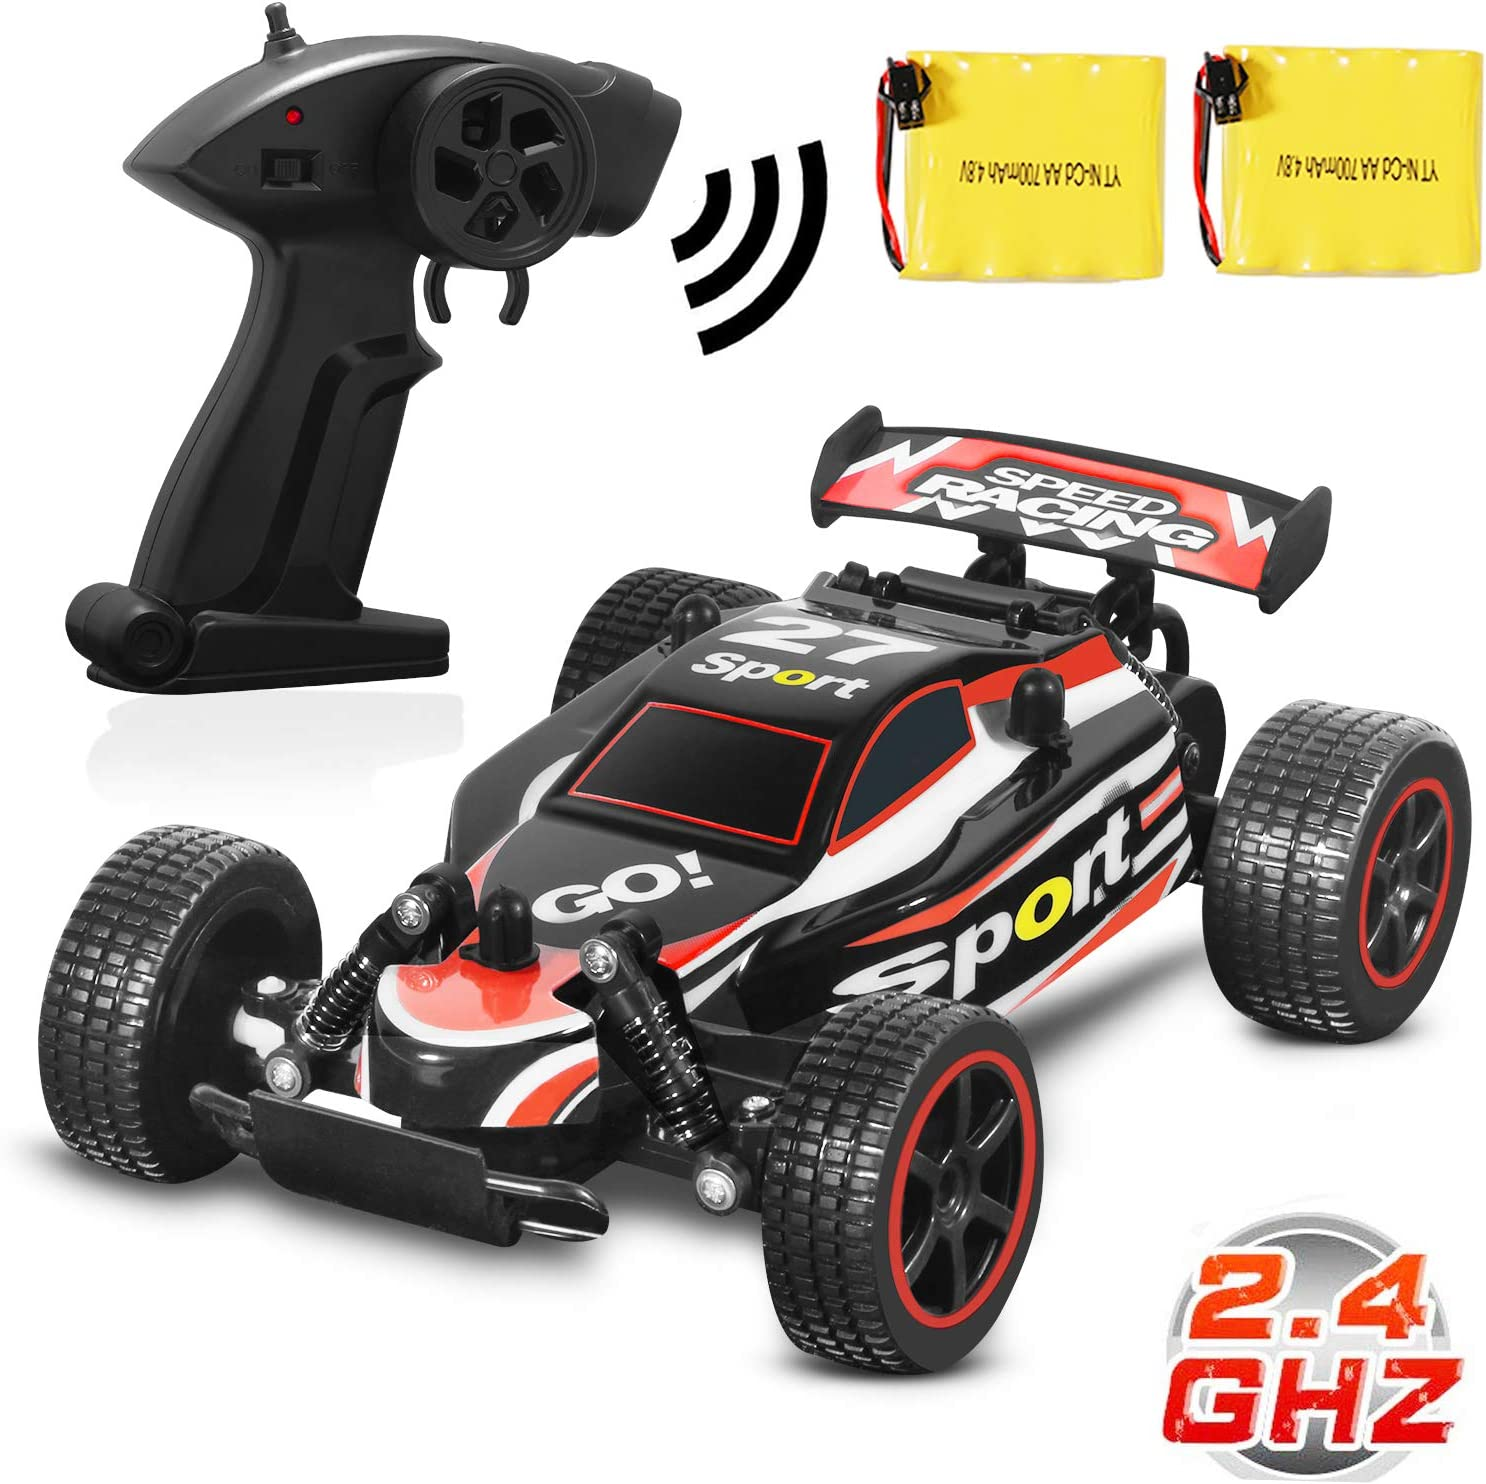 Blexy Rc Racing Cars 2.4Ghz hoch Speed Rock Off-Road Vehicle 1:20 2Wd Radio Remote Control Racing Toy Cars Electric Fast Race Buggy Hobby Auto Green 211 (Red)